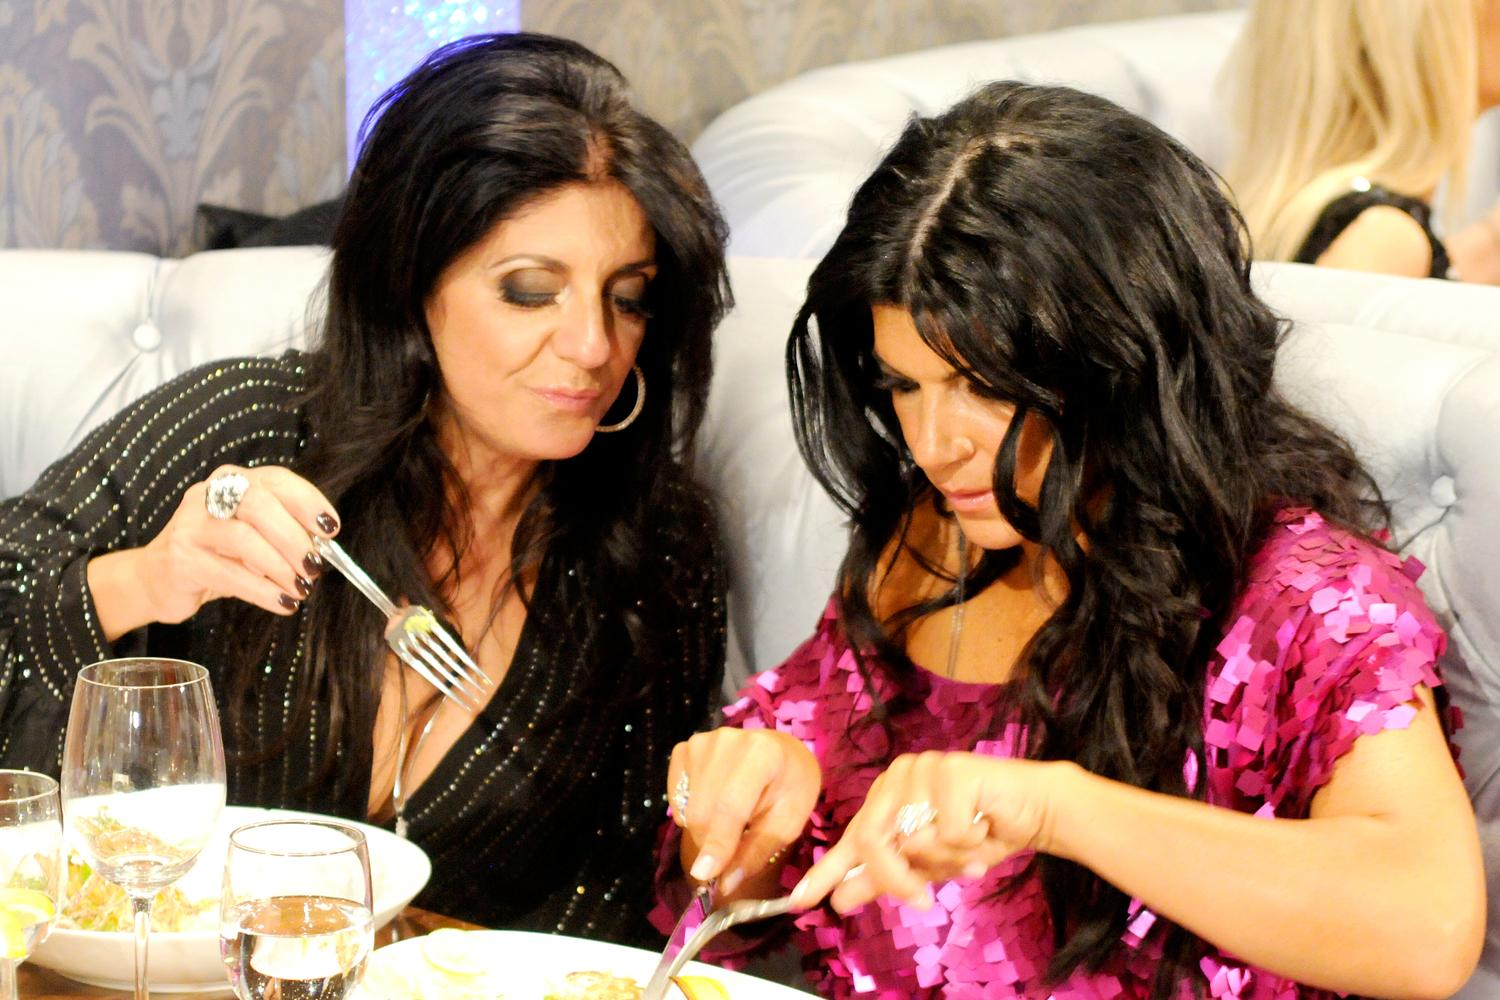 Kathy Wakile Says She Won't Waste Her Time Trying To Fix Her Relationship With Teresa Giudice - Here's Why!